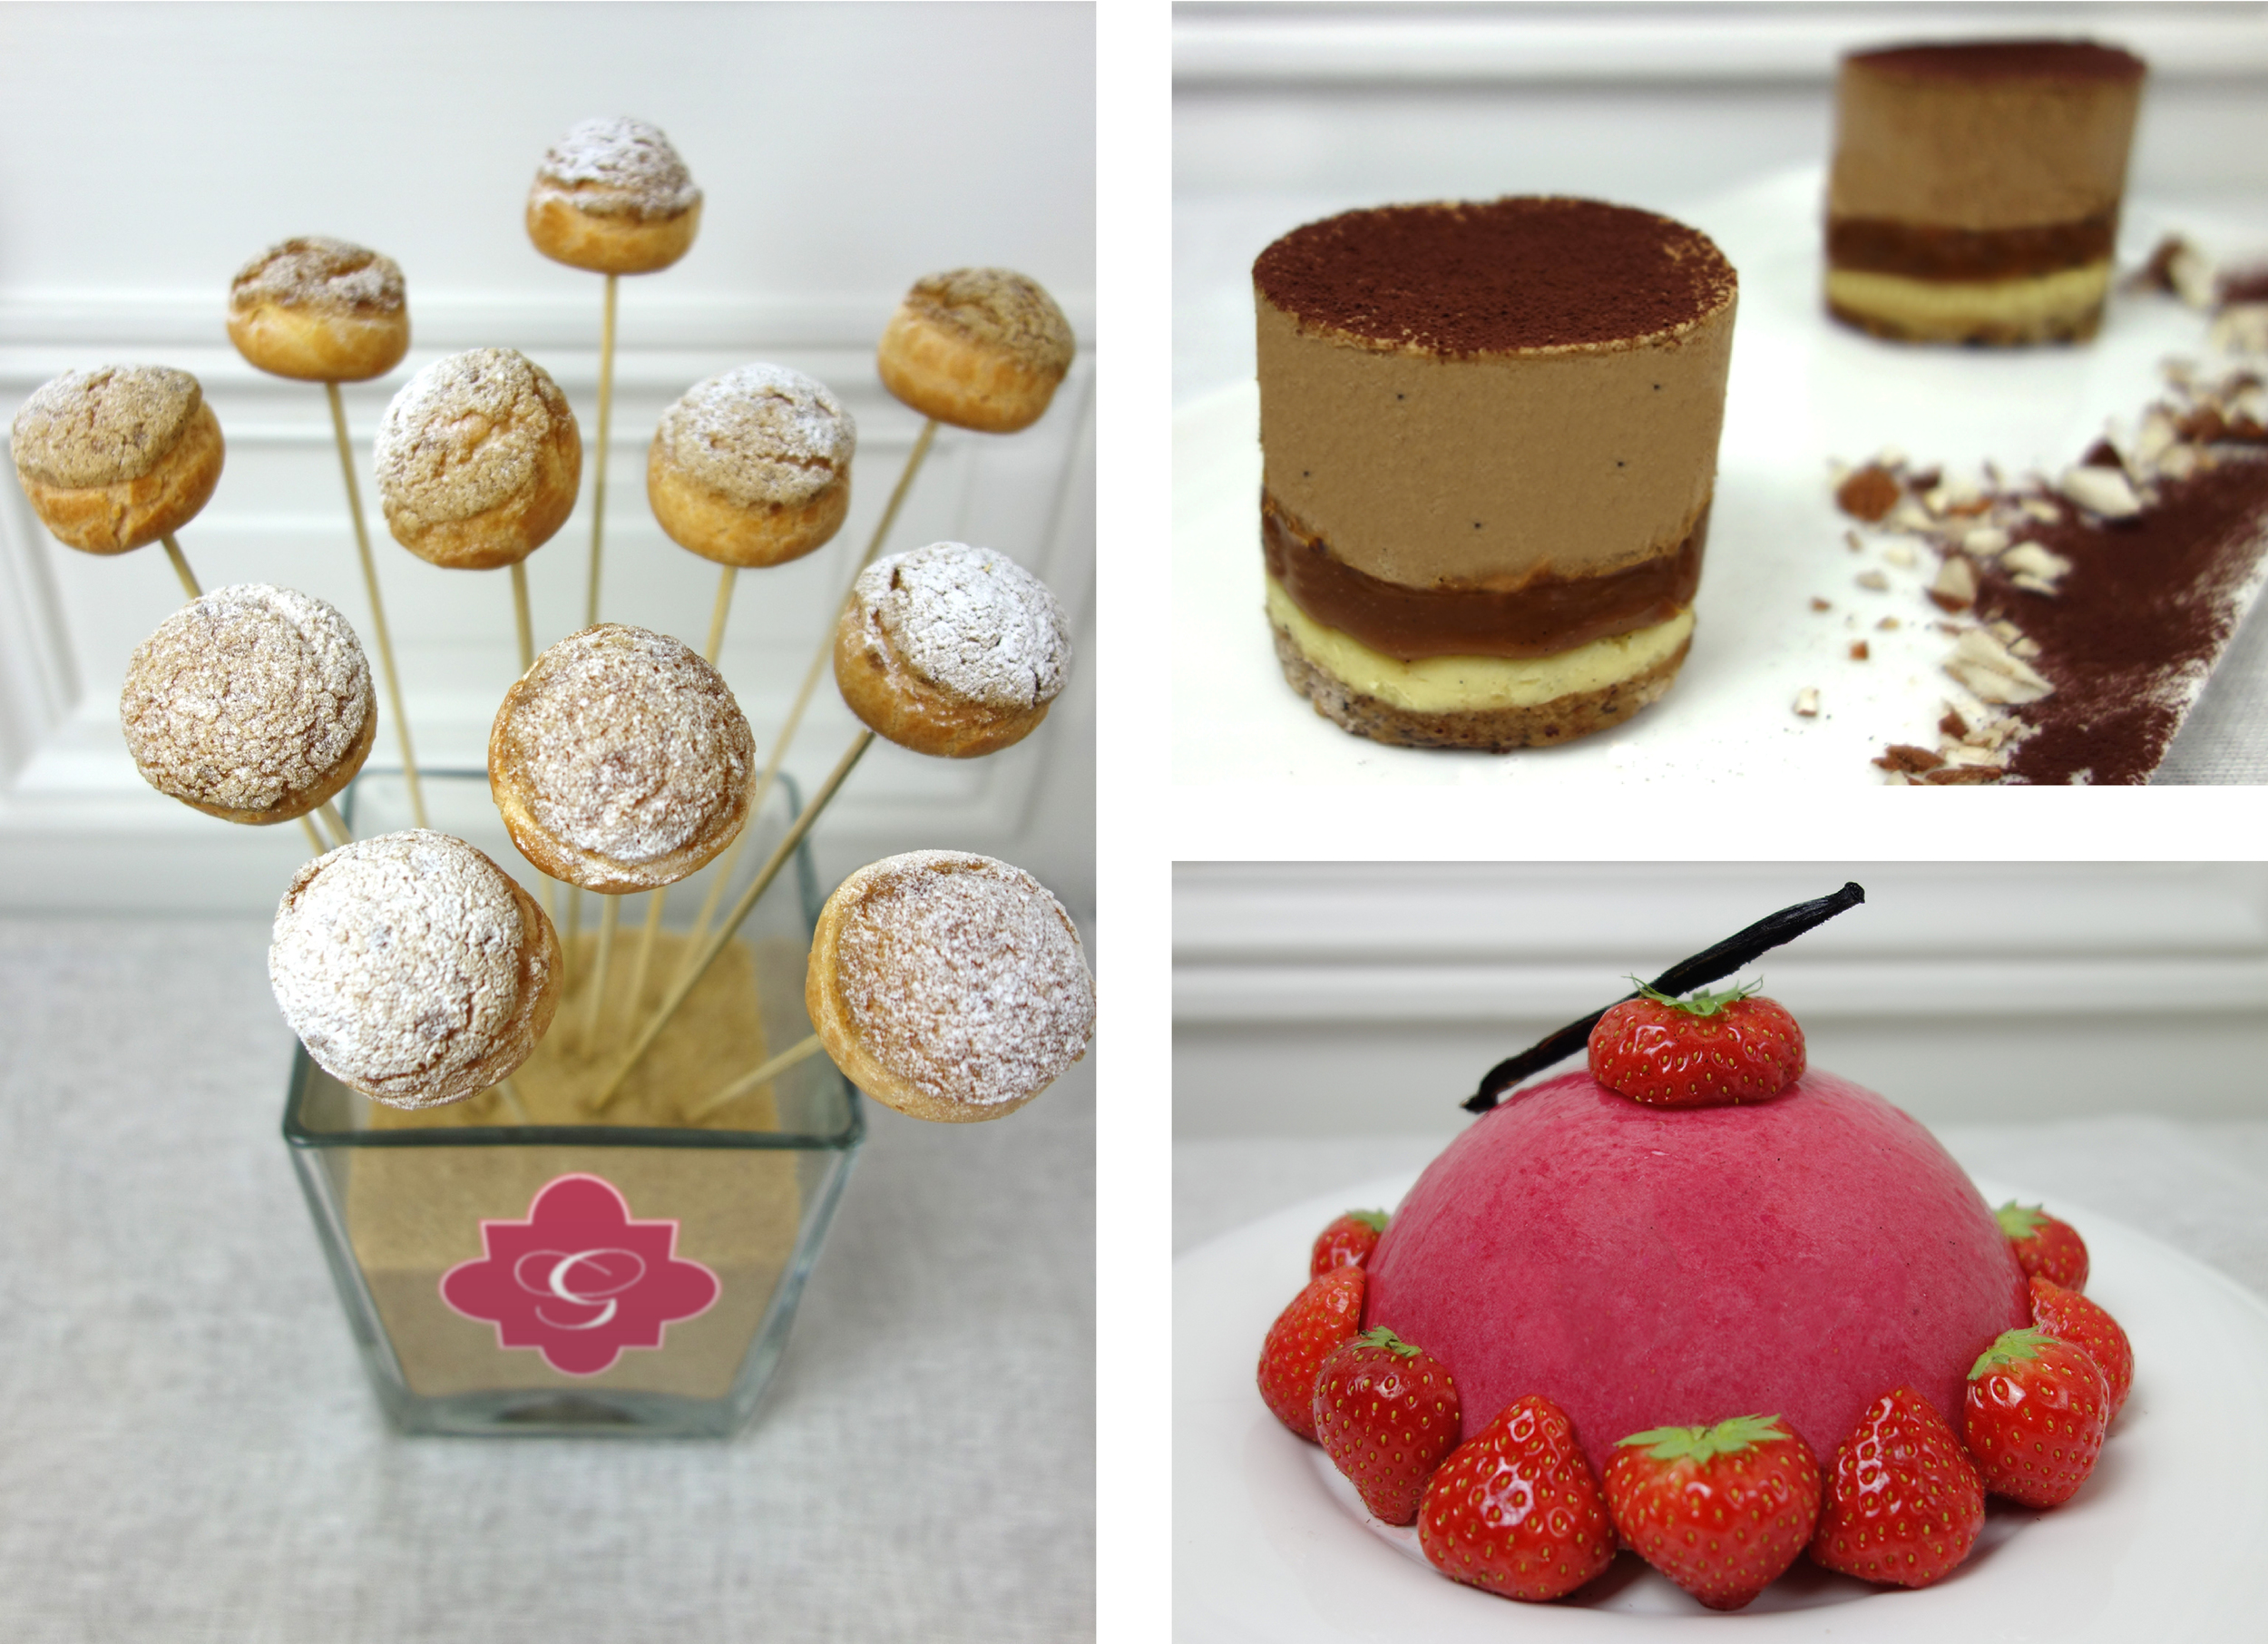 Food Photography that I took of the desserts for La Patisserie de Grace and are on her new website